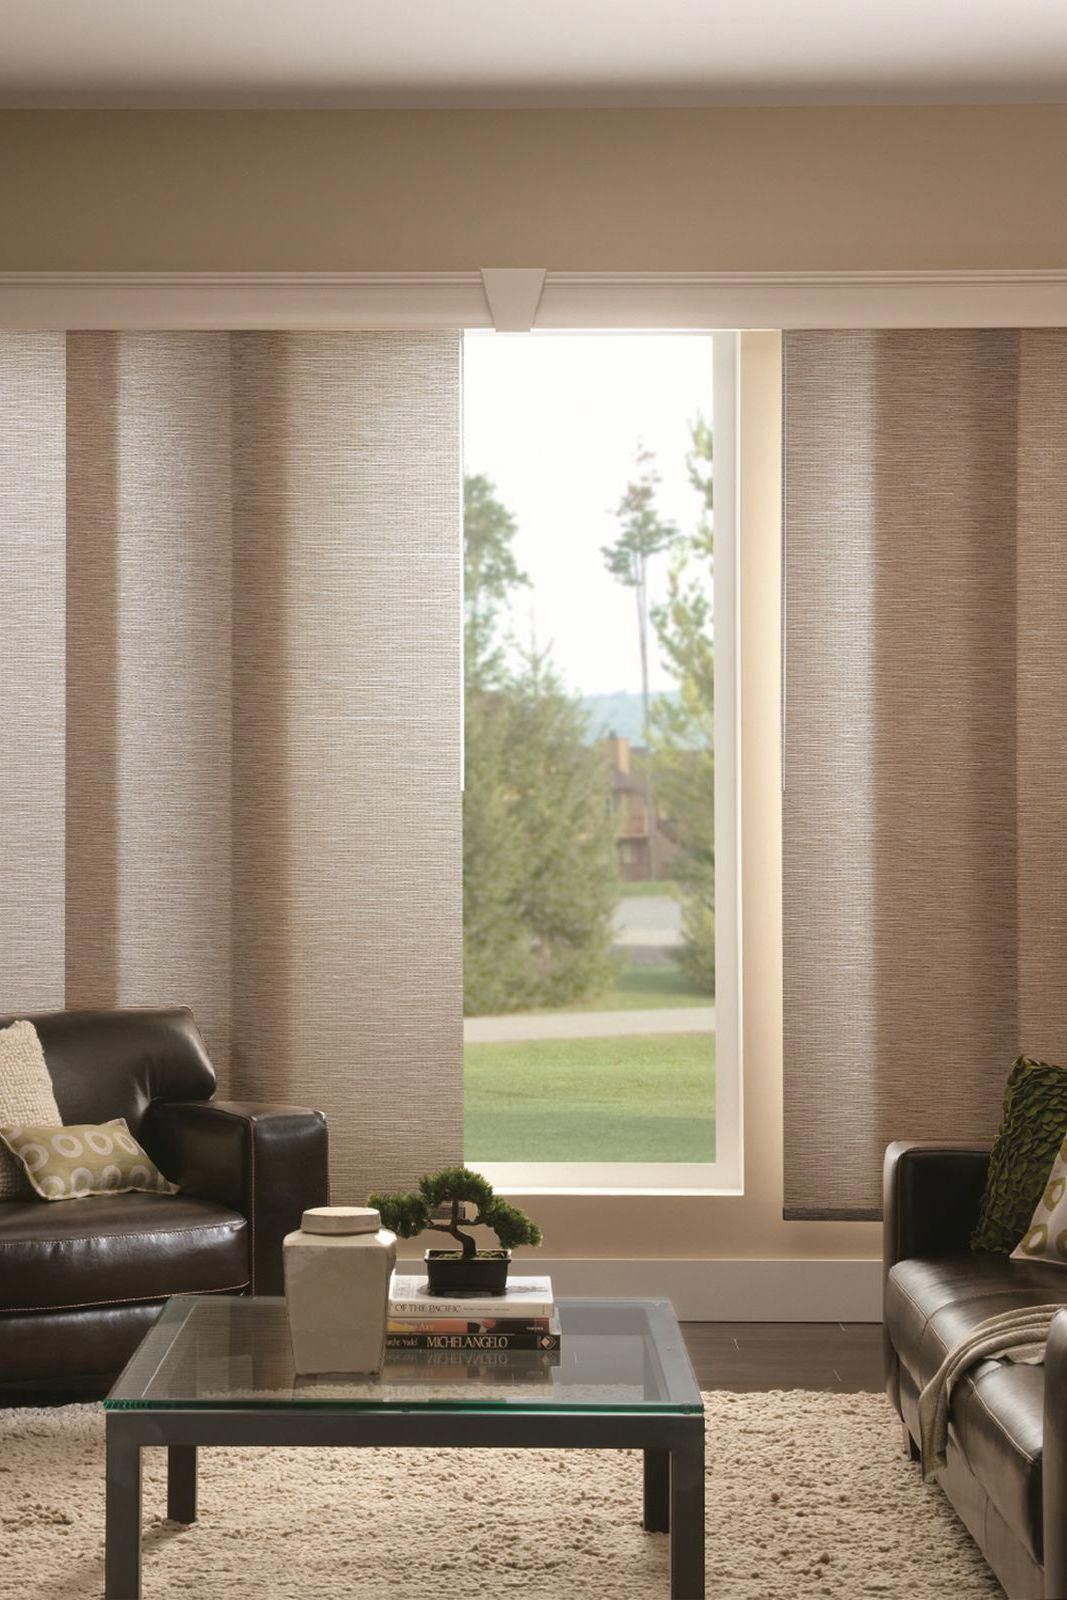 Bamboo Sliding Panel Track Blinds: Cover Sliding Glass Doors And Wide Windows In Style With